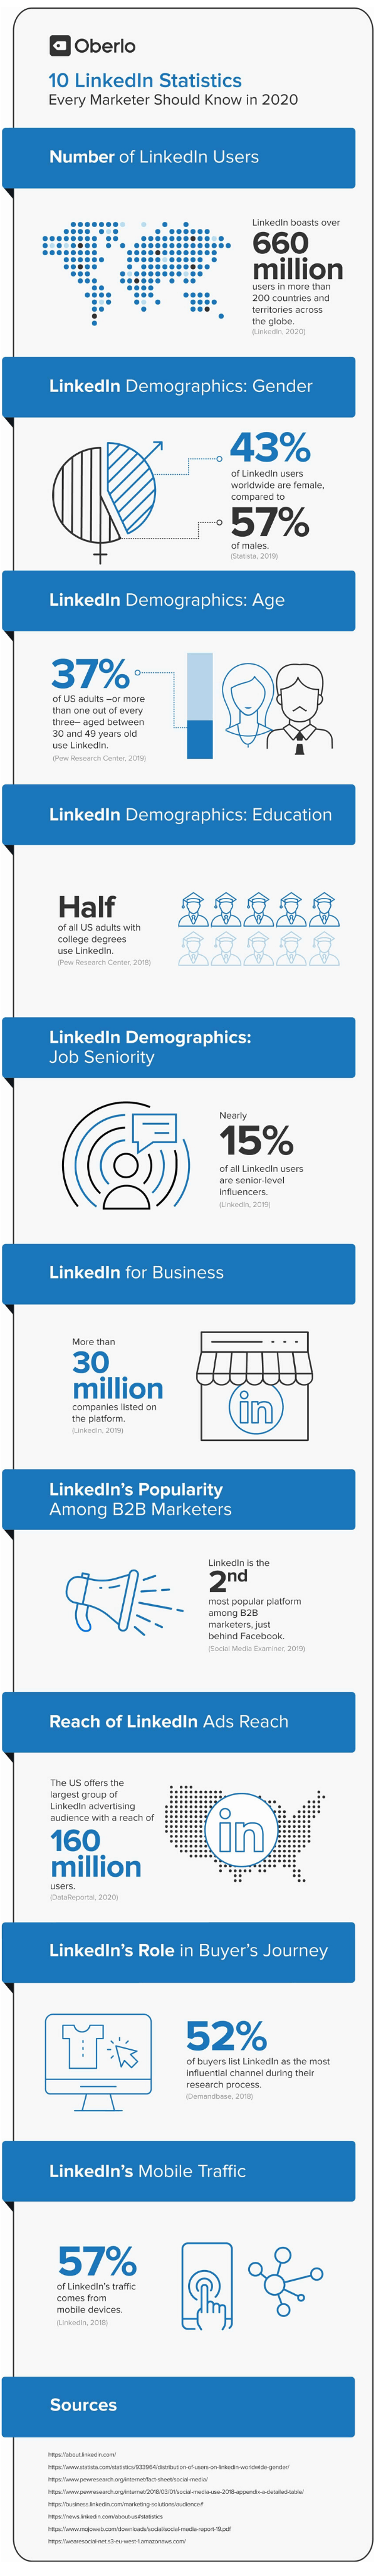 Learn more about critical statistics and numbers for LinkedIn, in this great infographic!